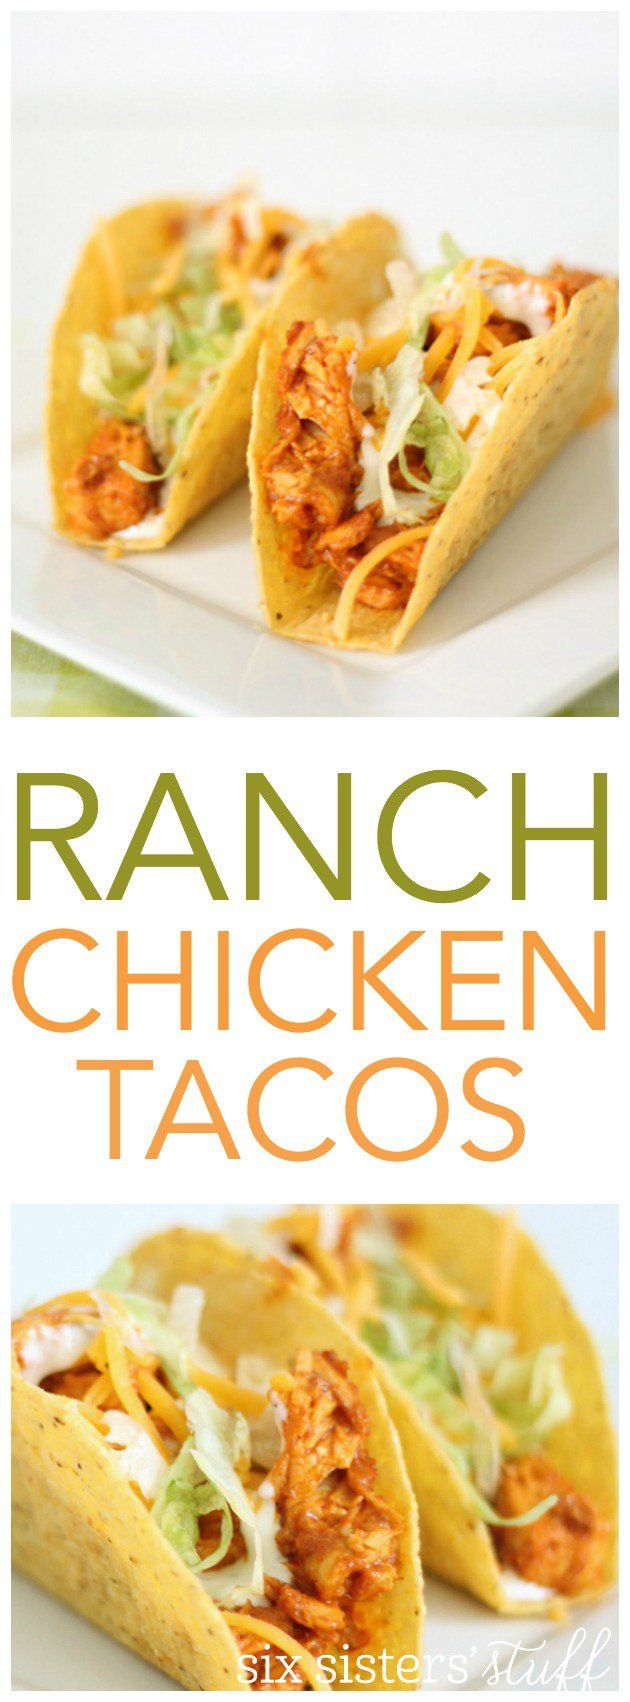 Easy Ranch Chicken Tacos from SixSistersStuff.com. So easy and delicious!